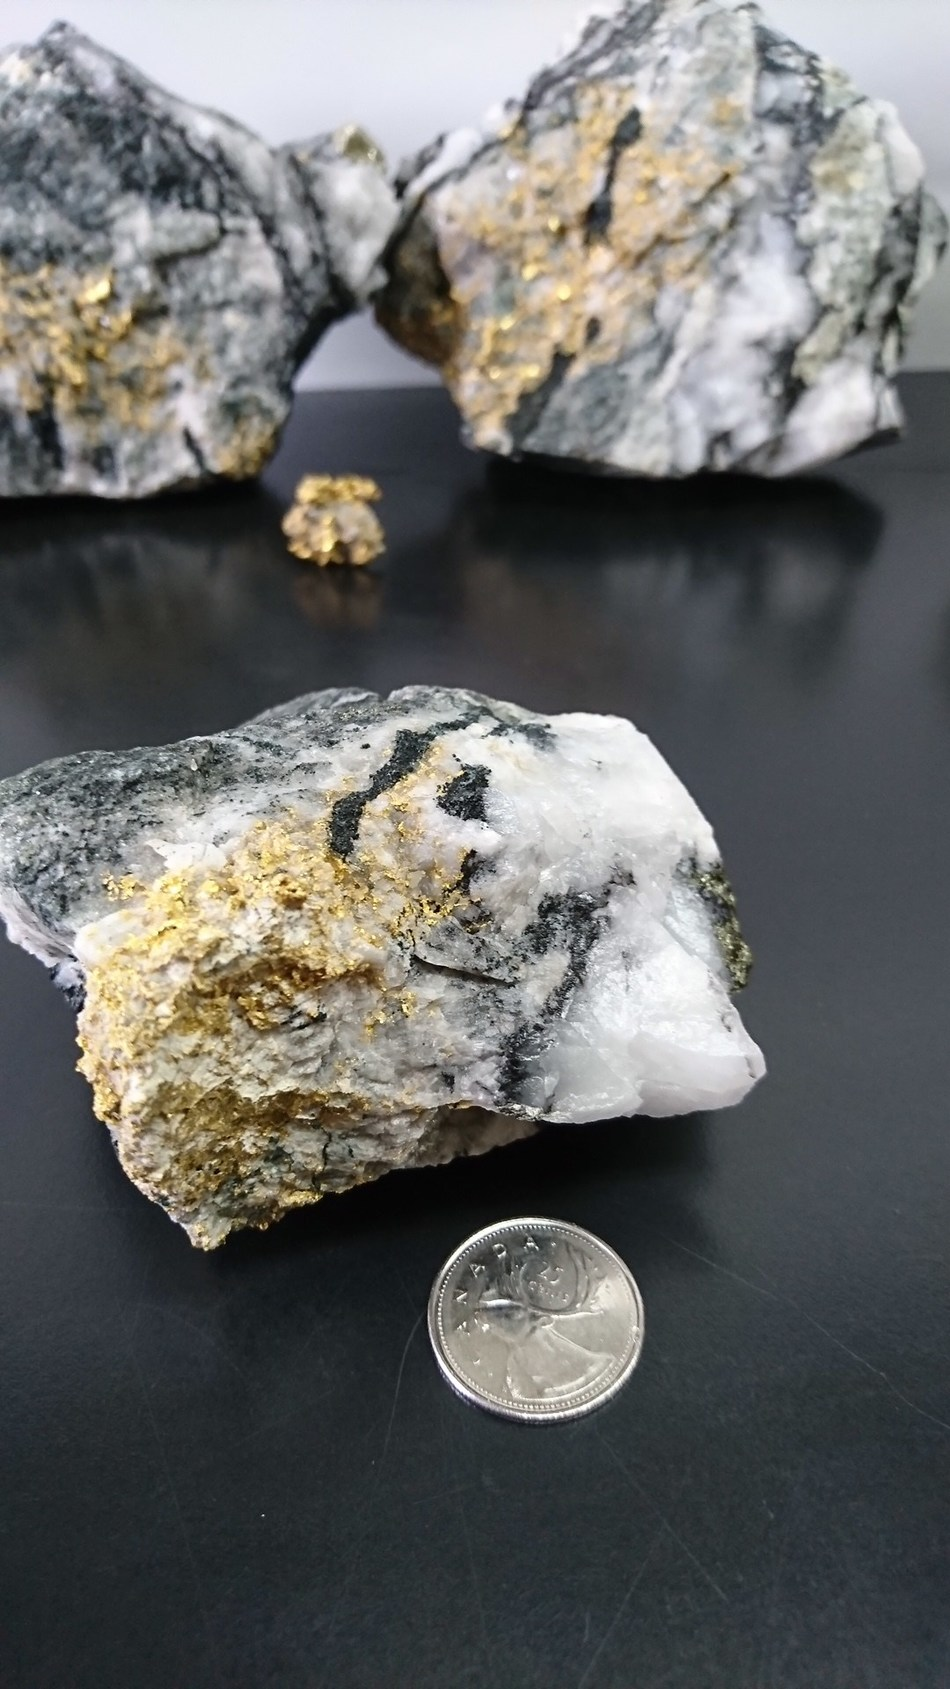 Monarques Gold intersects 7.84 g/t Au over 9.0 metres (29.5 feet) at Croinor Gold (CNW Group/Monarques Gold Corporation)